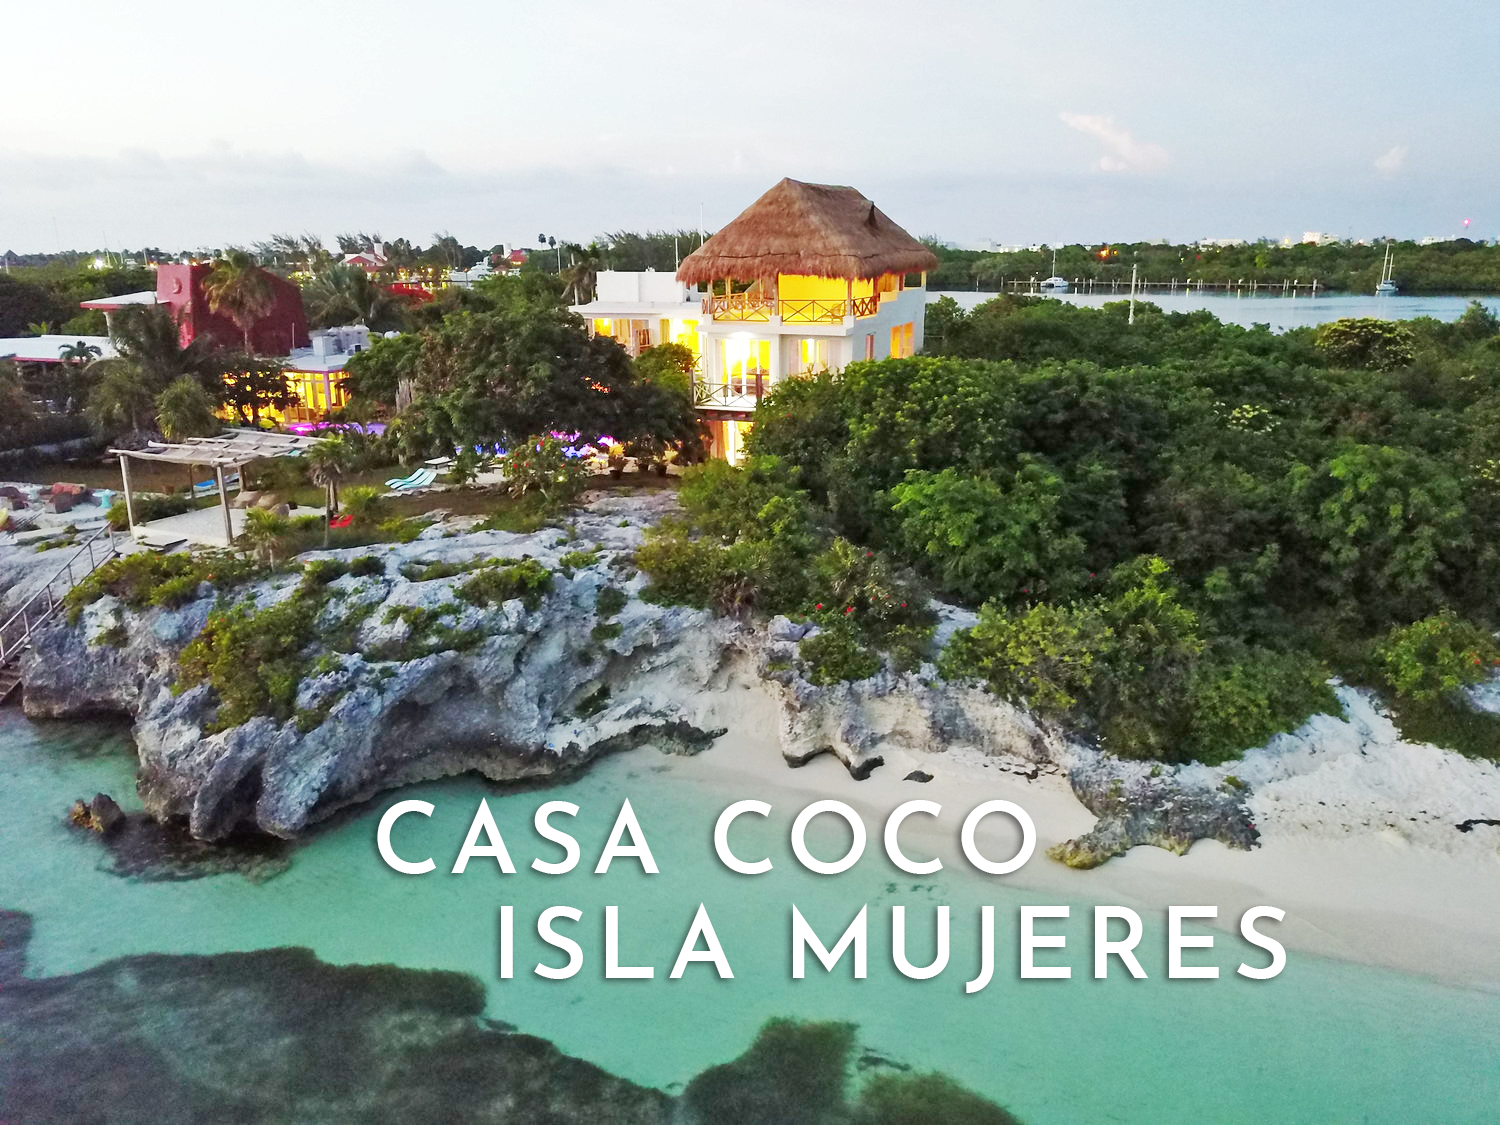 Casa Coco Drone Wide TITLE TEXT (Compressed).png